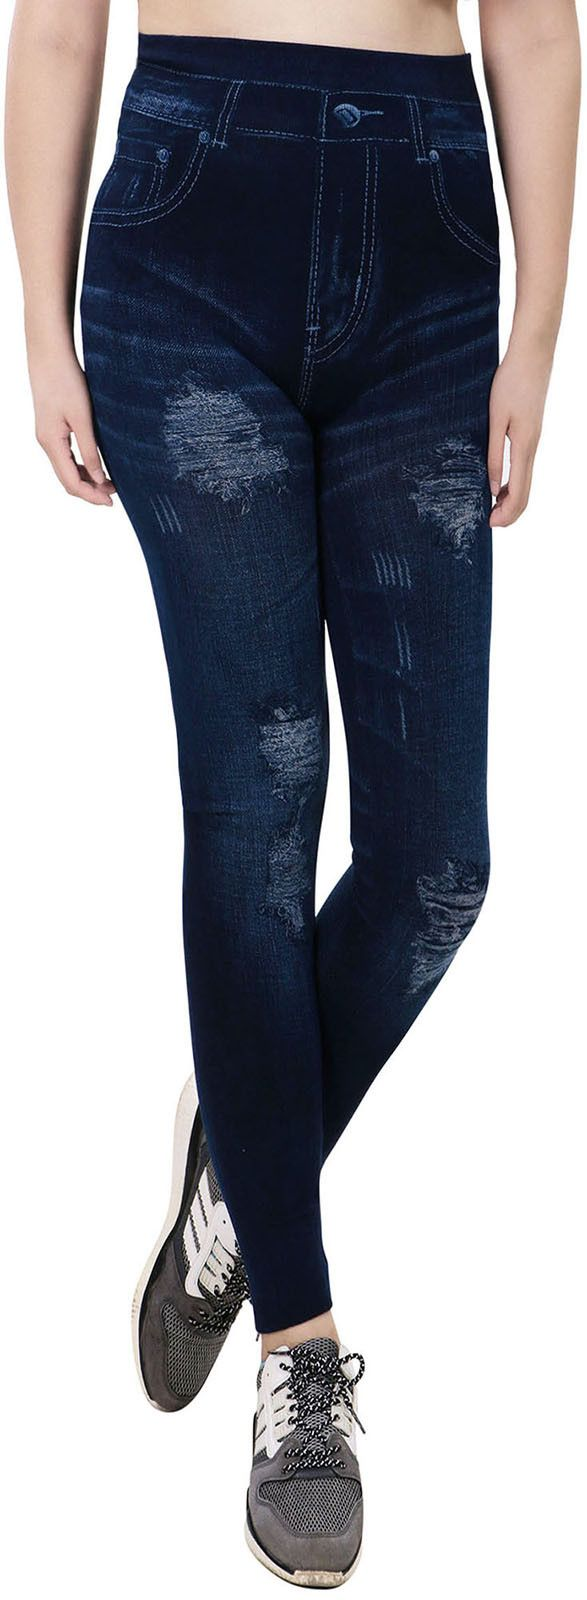 Denim Printed Faux Jeans Ankle Length Seamless Leggings, Ripped